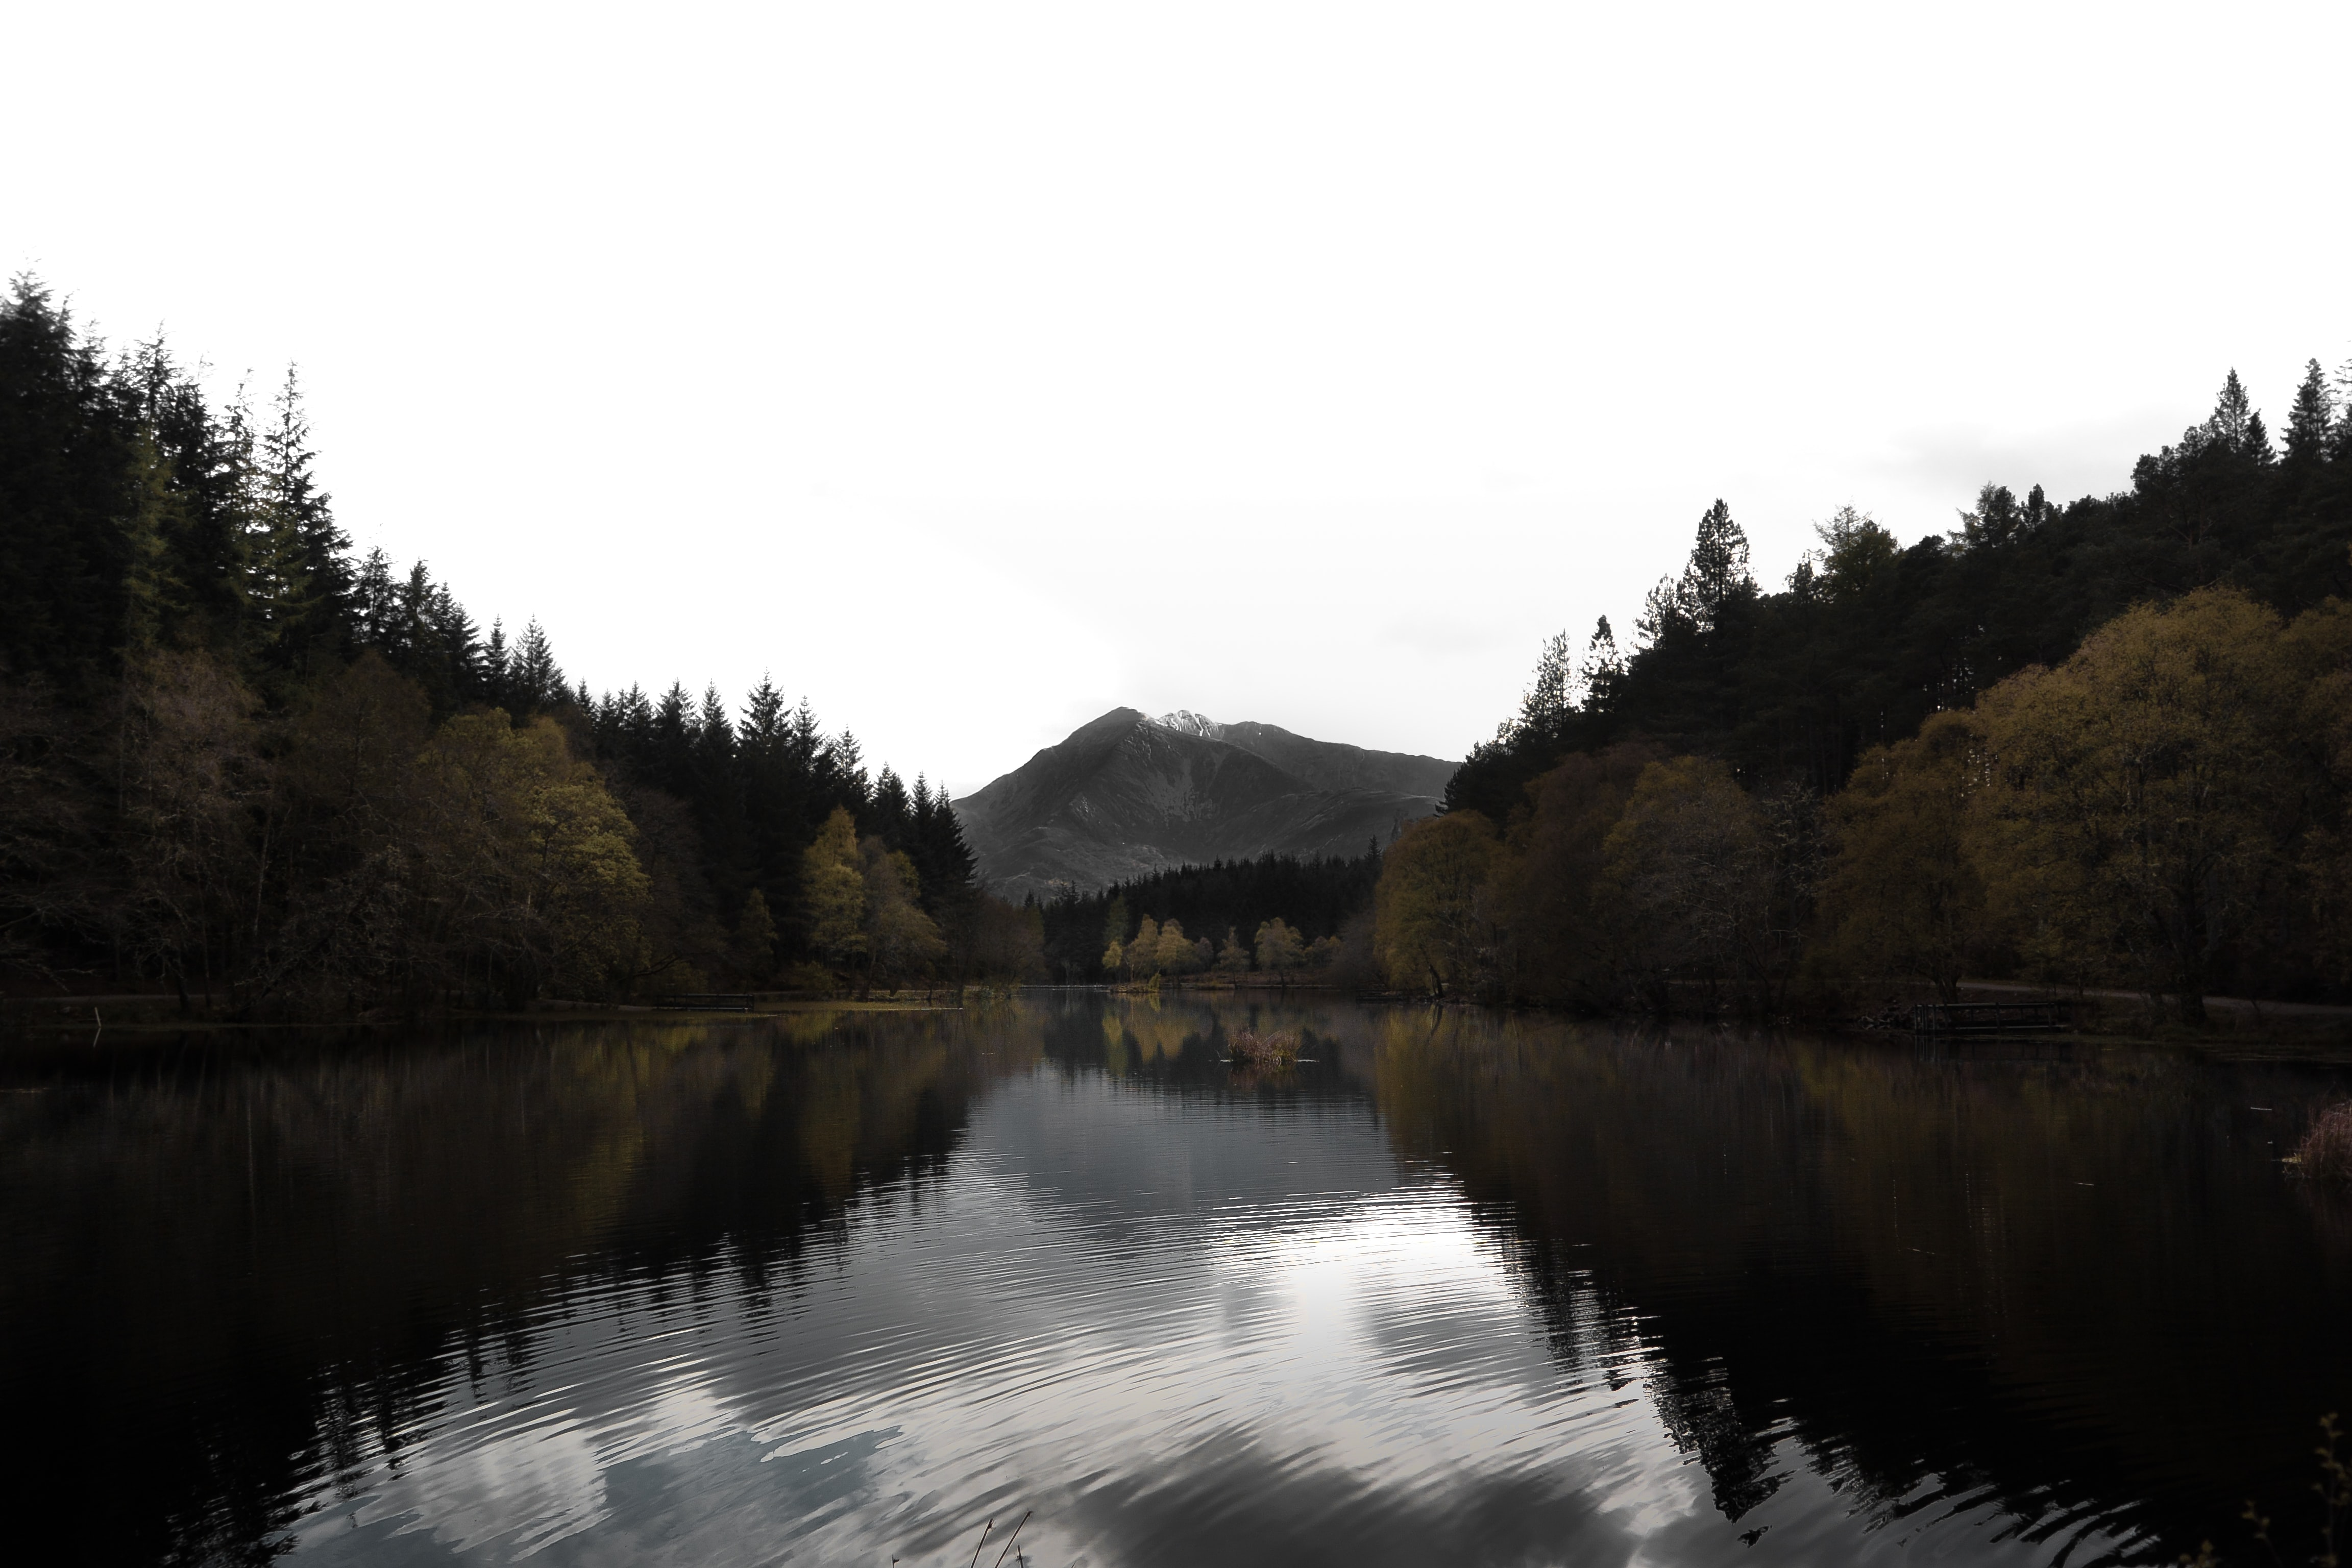 Looking down a lake with trees on both sides and a mountain in the backdrop.